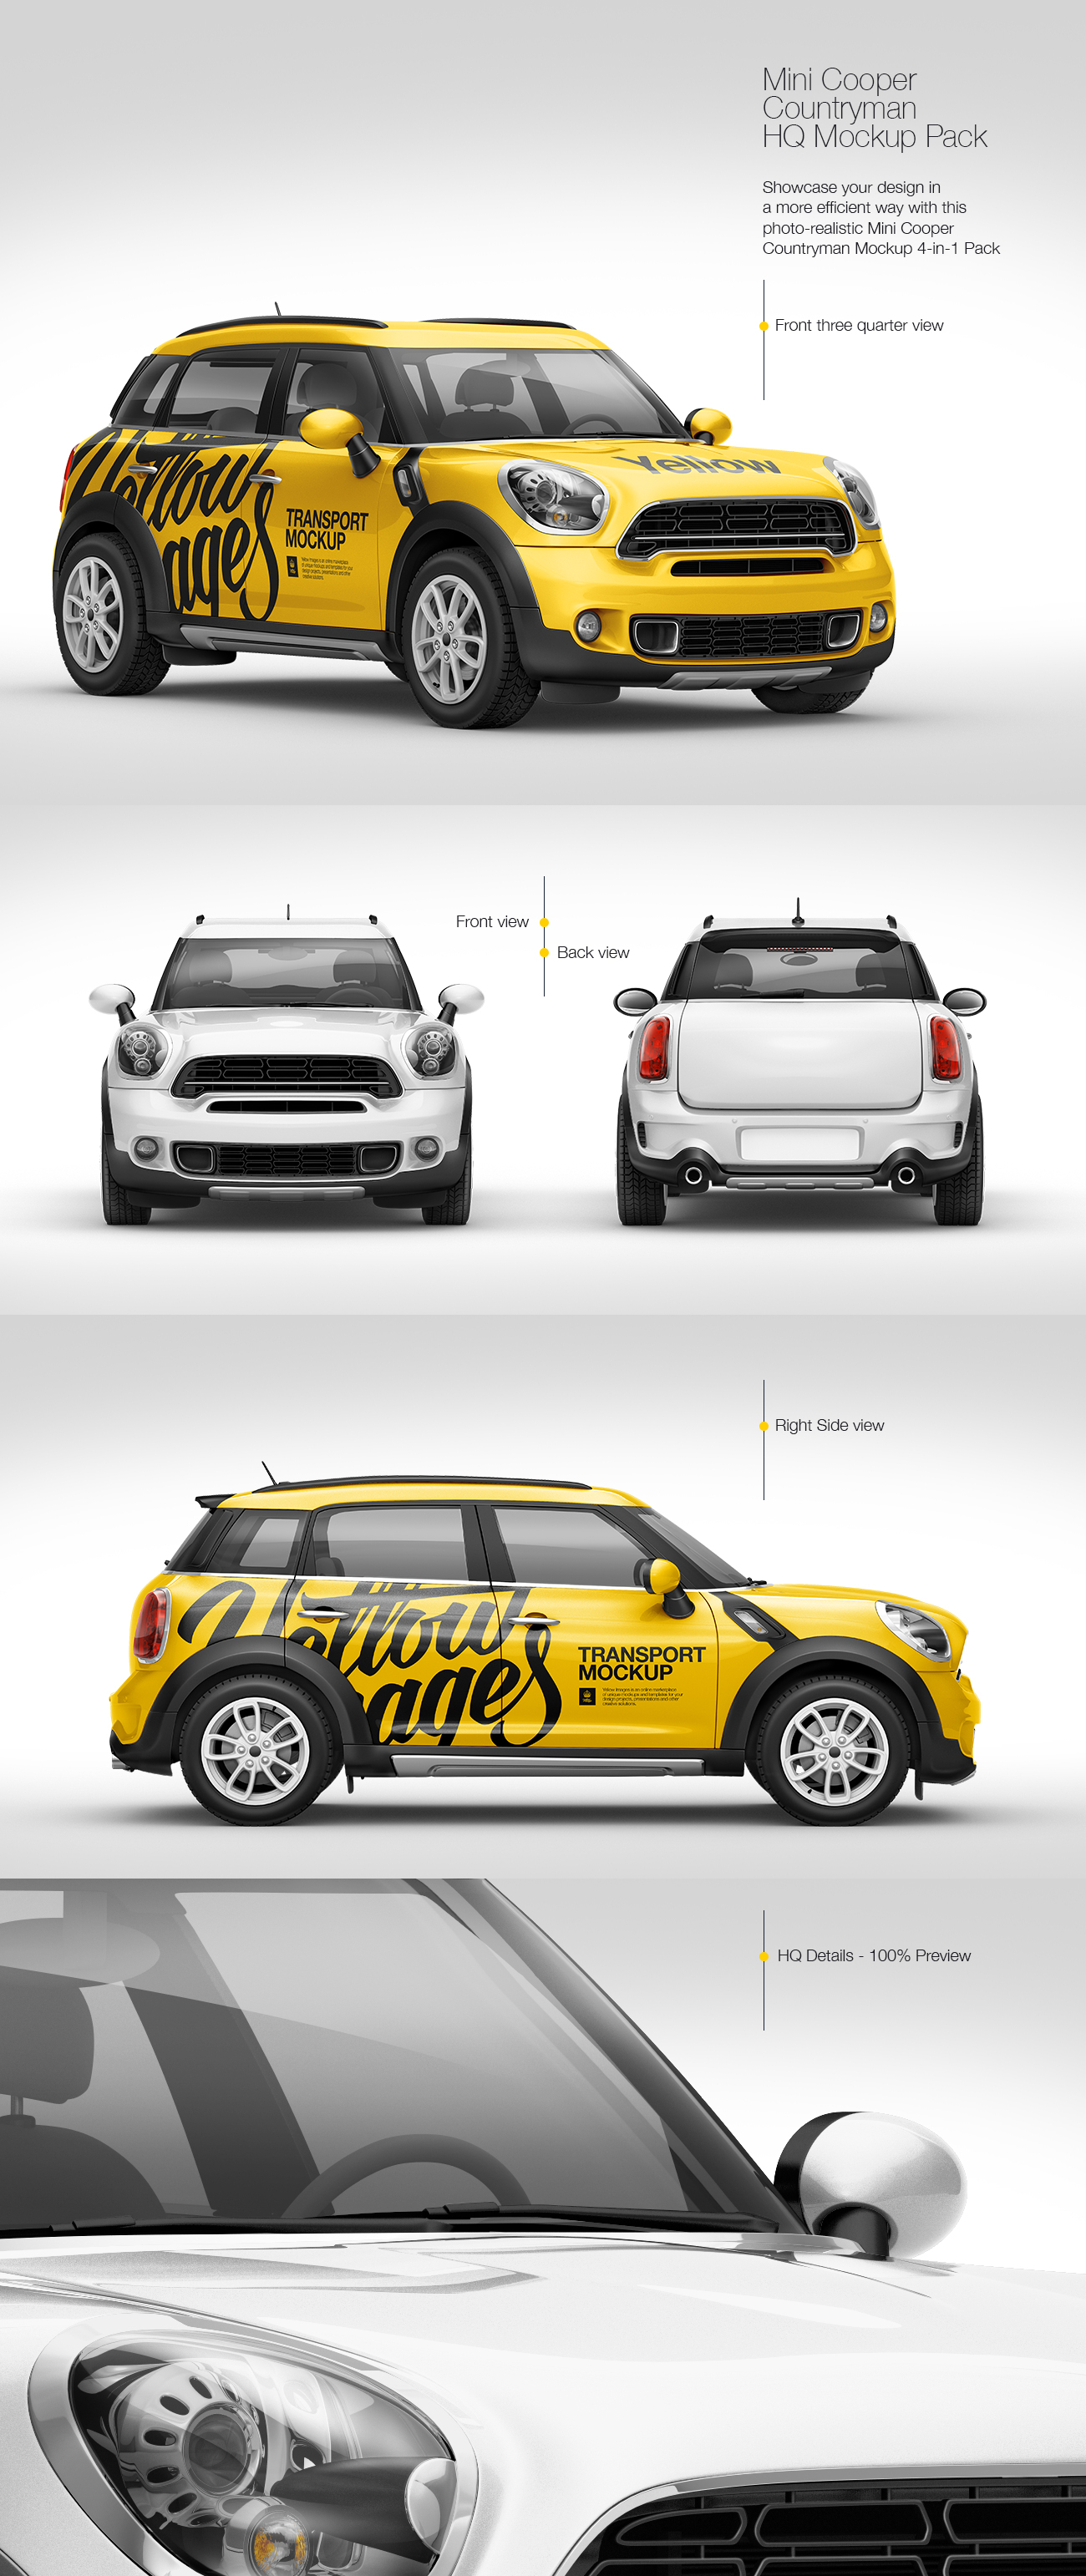 Mini Cooper Countryman HQ Mockup Pack